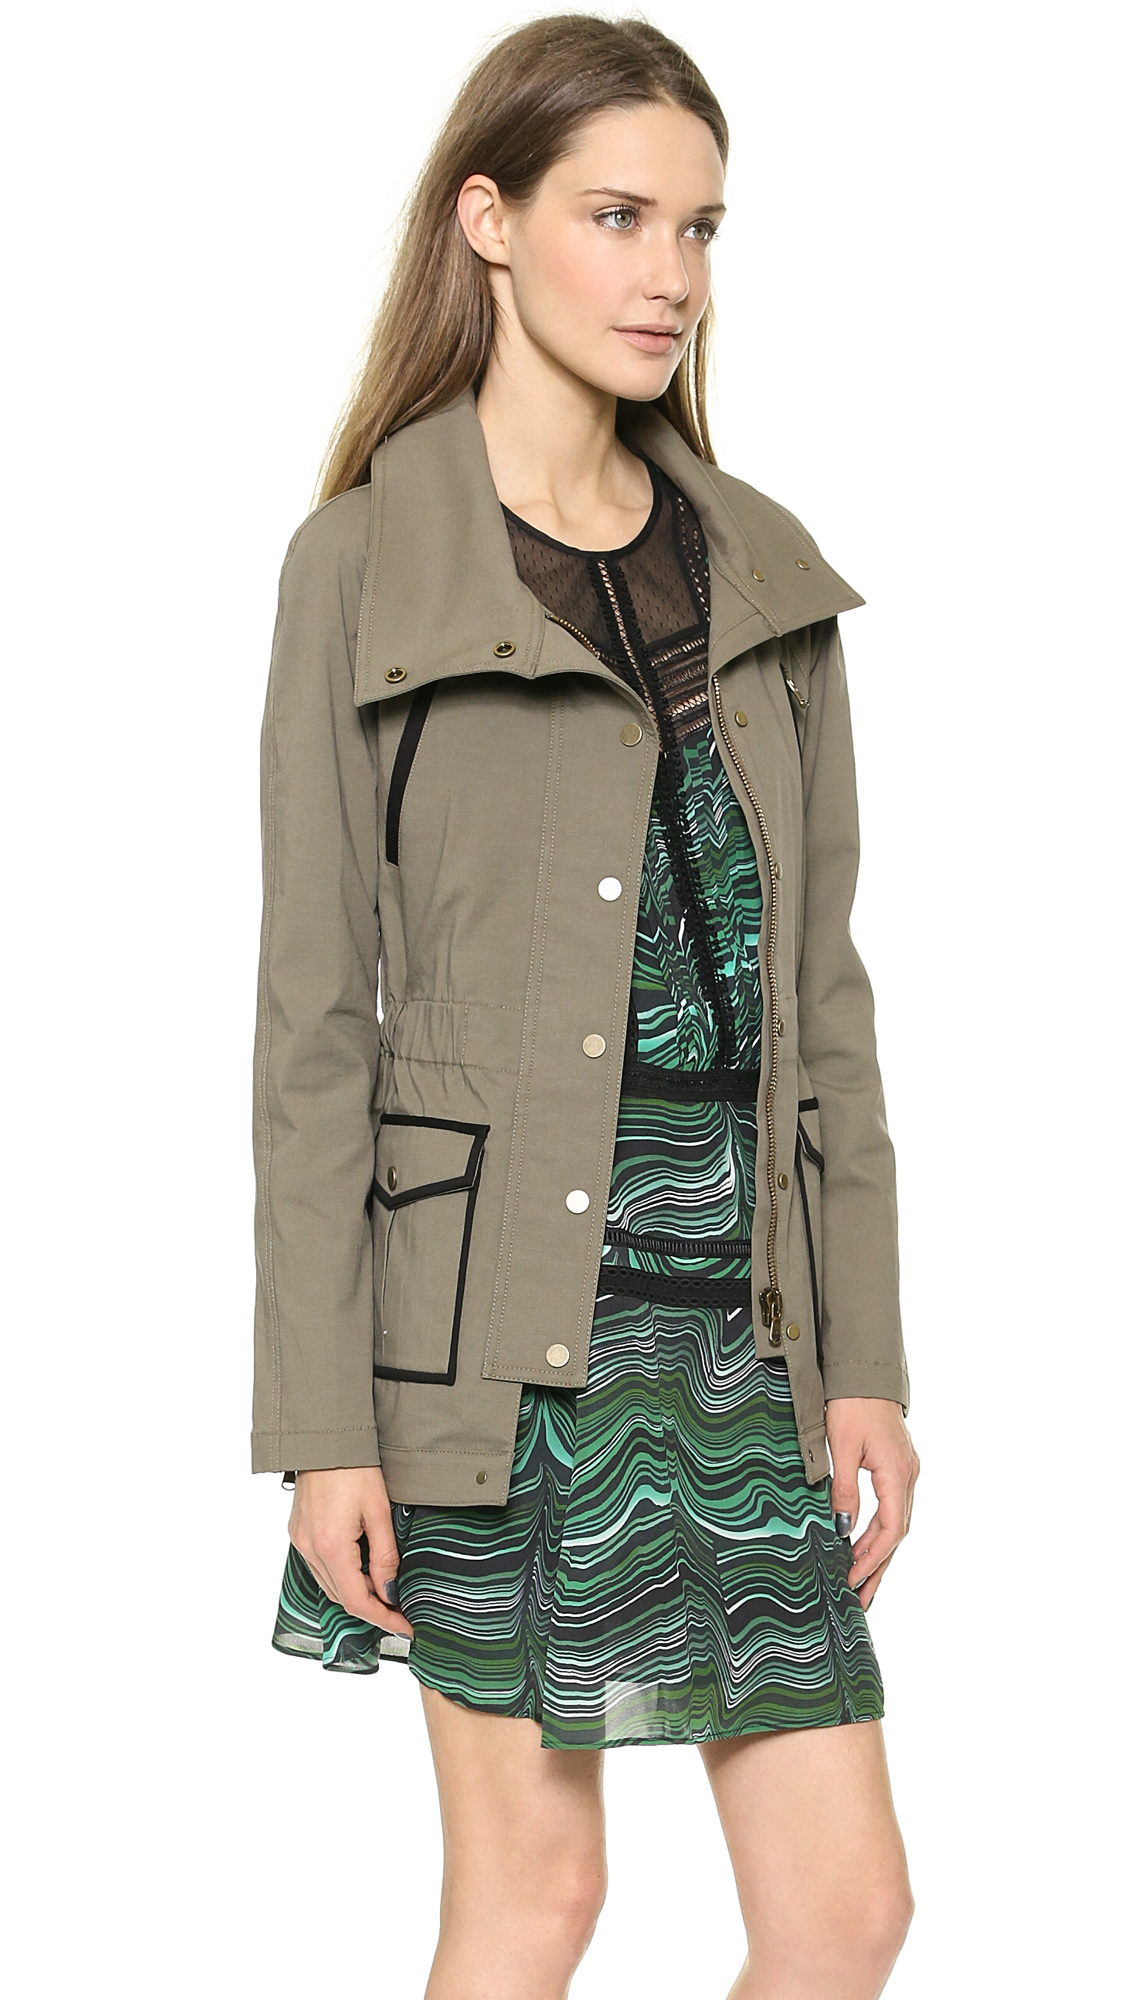 Veronica Beard Military Jacket Olive In Green Lyst